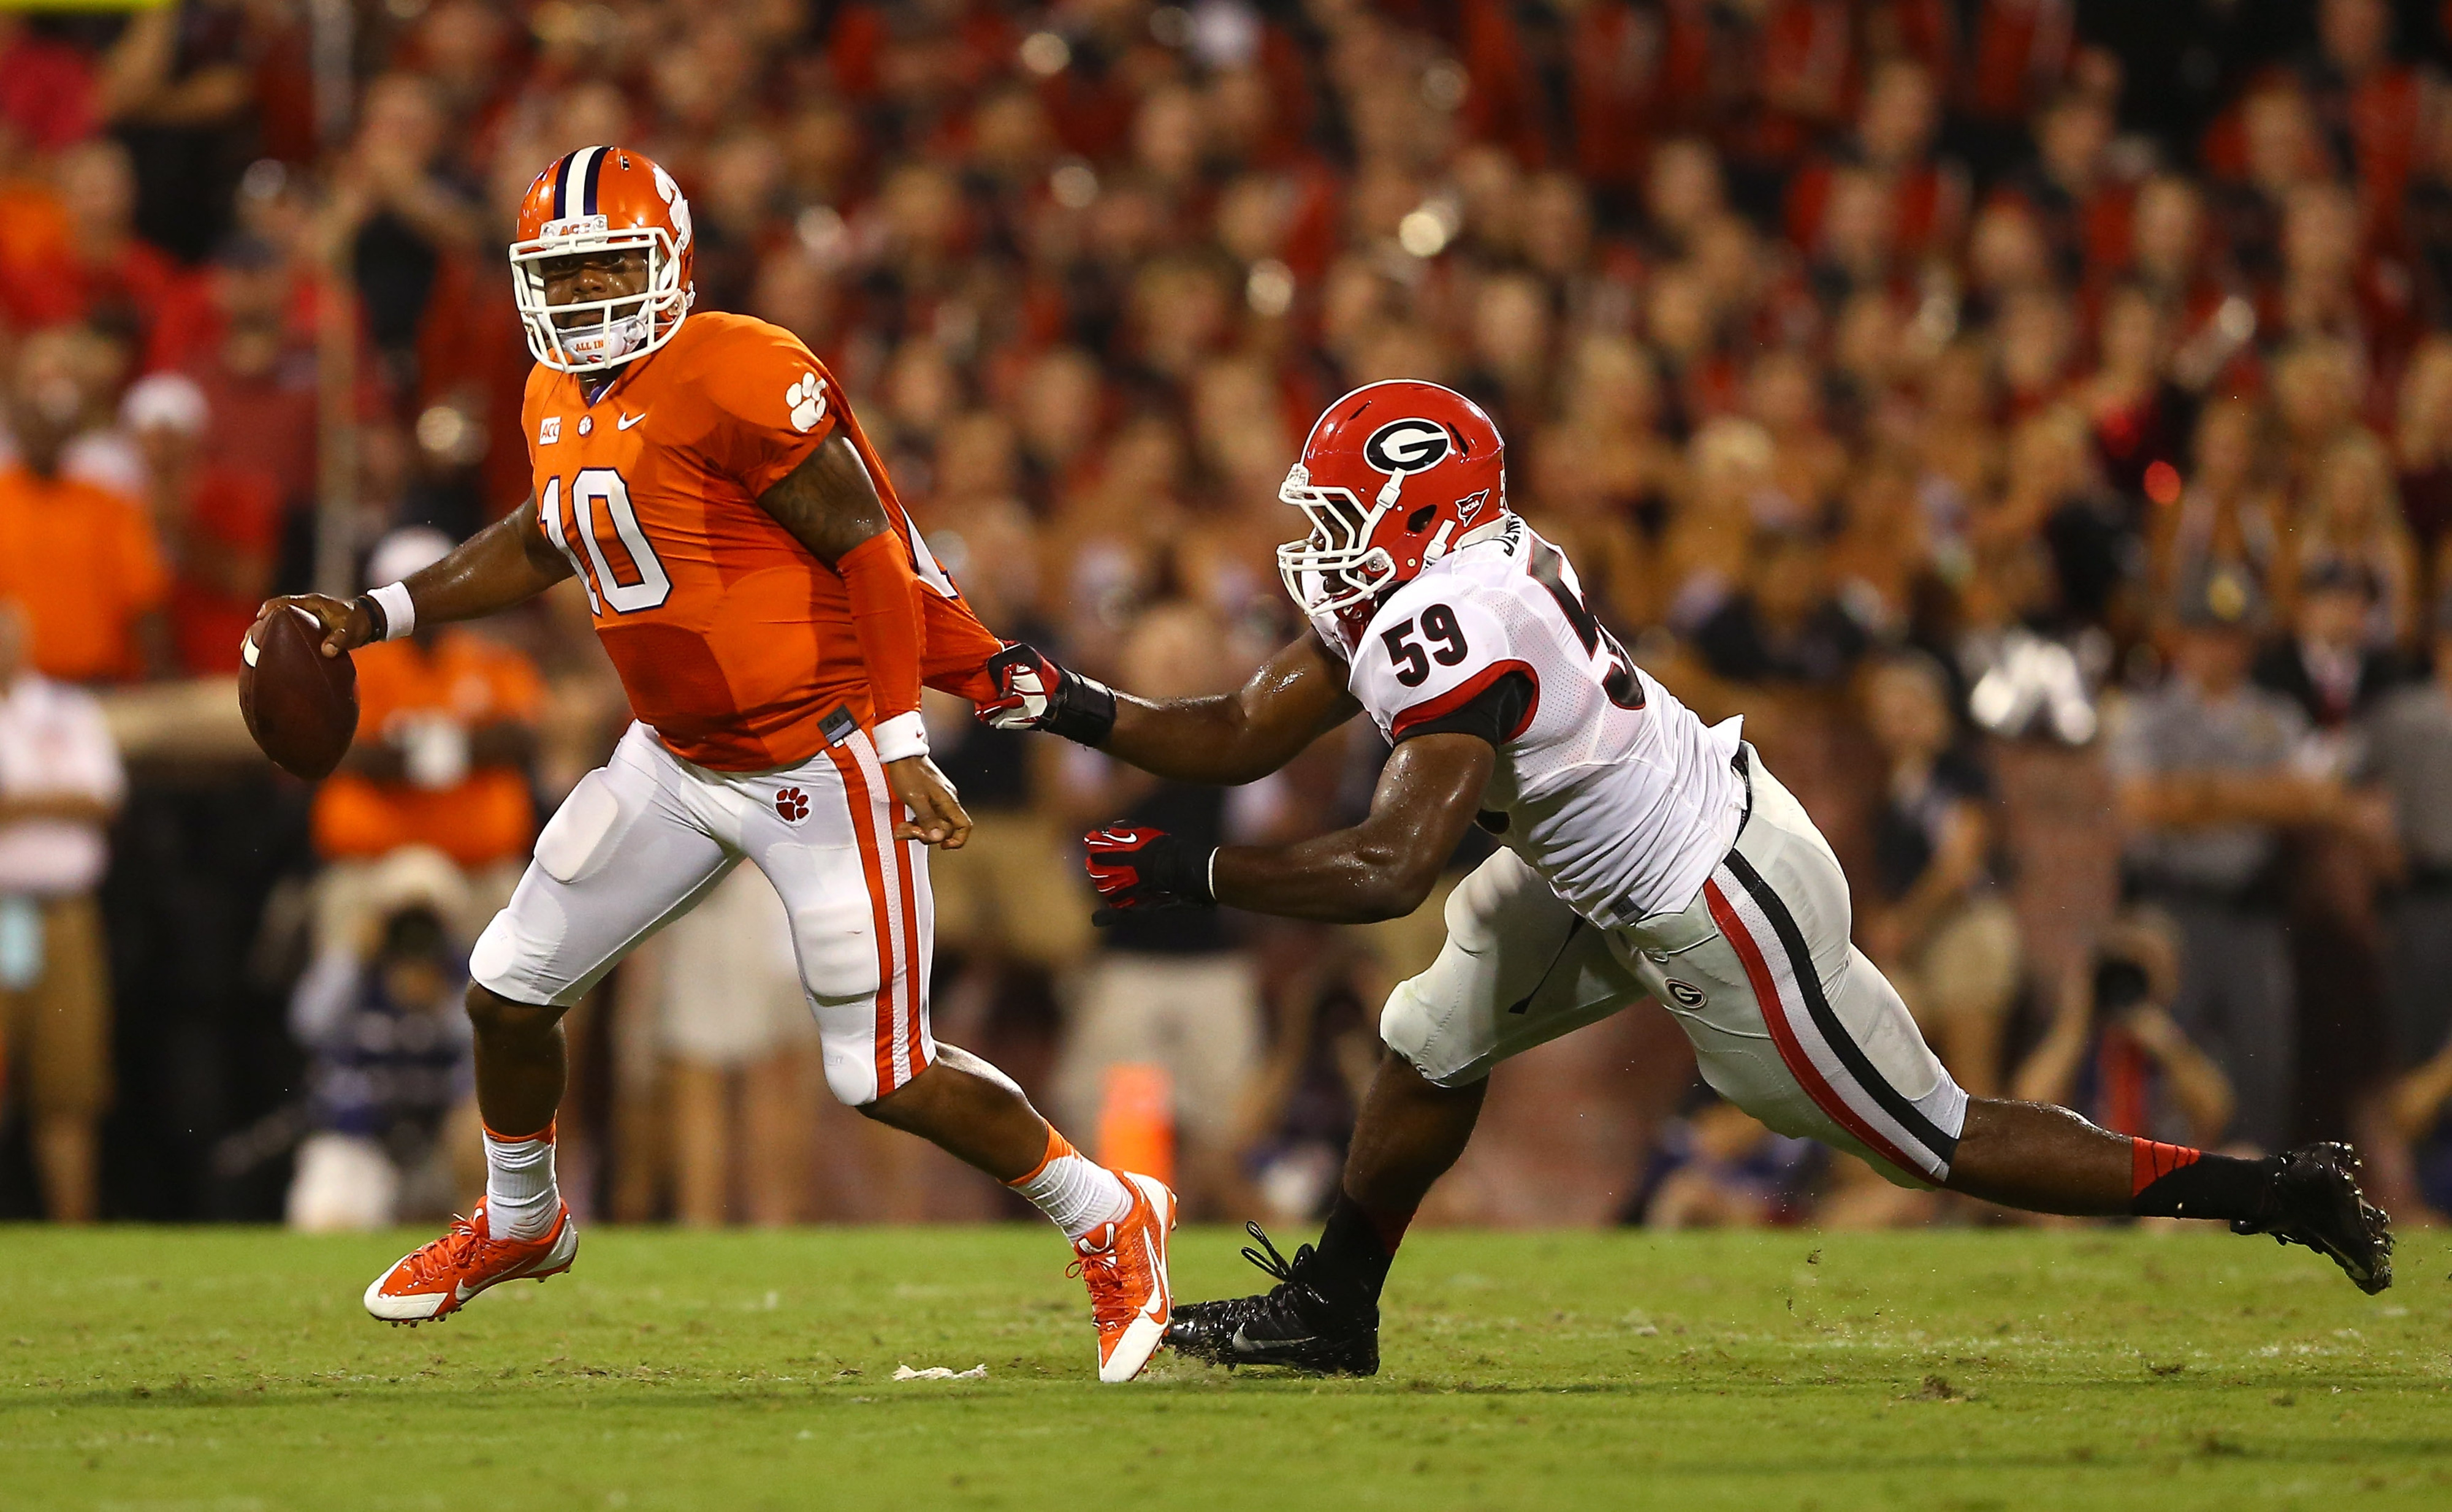 Georgia vs. Clemson 2013 final score: Tigers hold on for huge home win